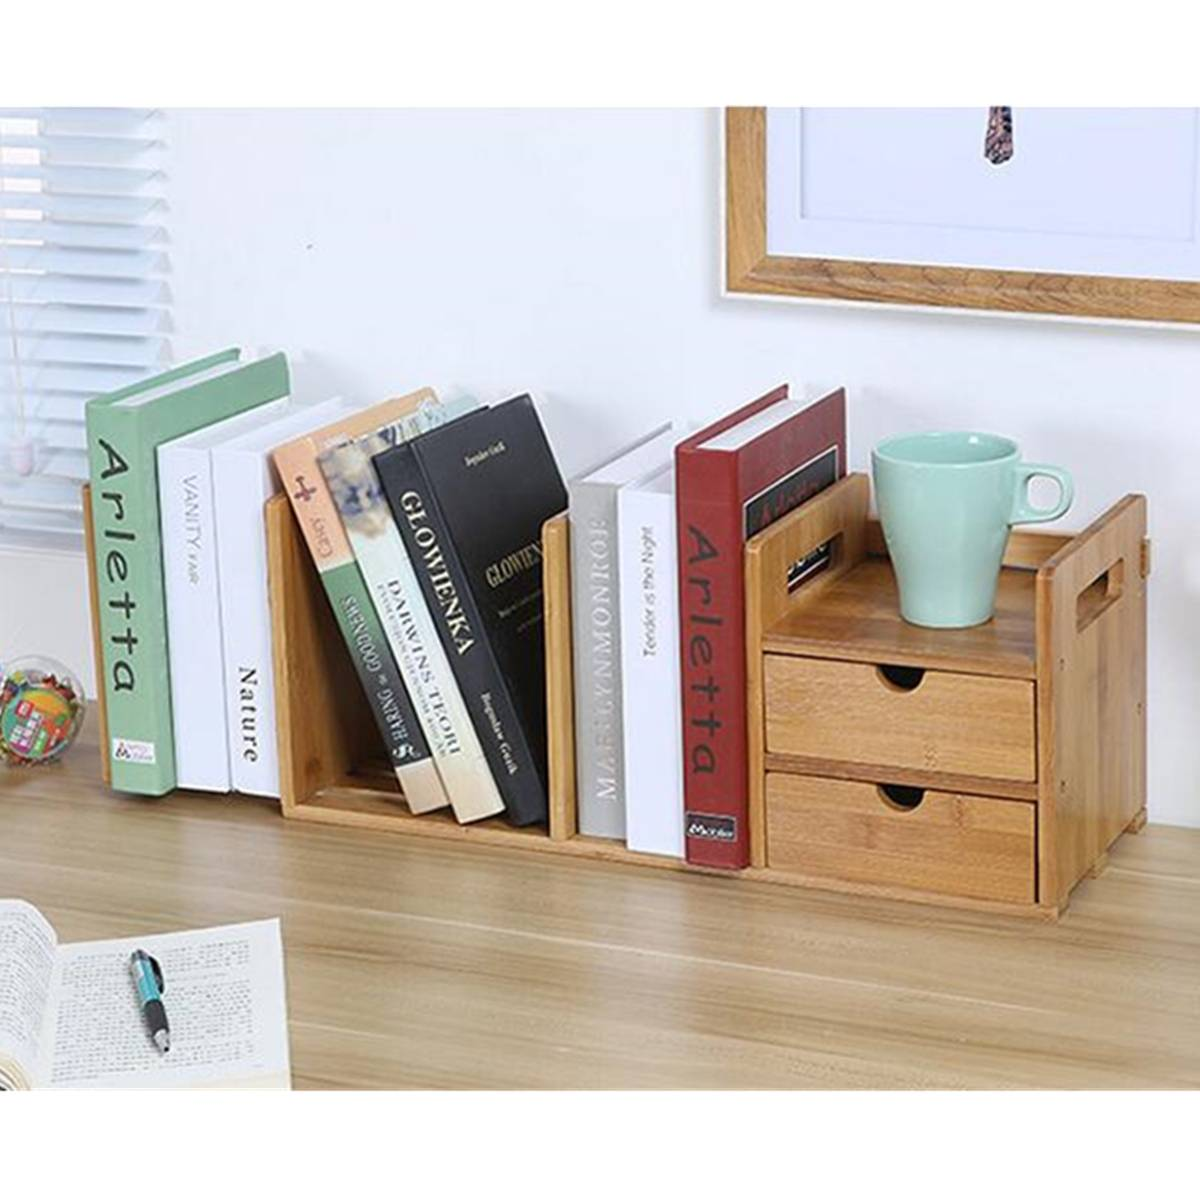 Luxury Bamboo Desktop Bookshelf Desk Organizer Extendable Storage With 2 Drawers Office School Book Holder Large Storage box cute cat pen holders multifunctional storage wooden cosmetic storage box memo box penholder gift office organizer school supplie